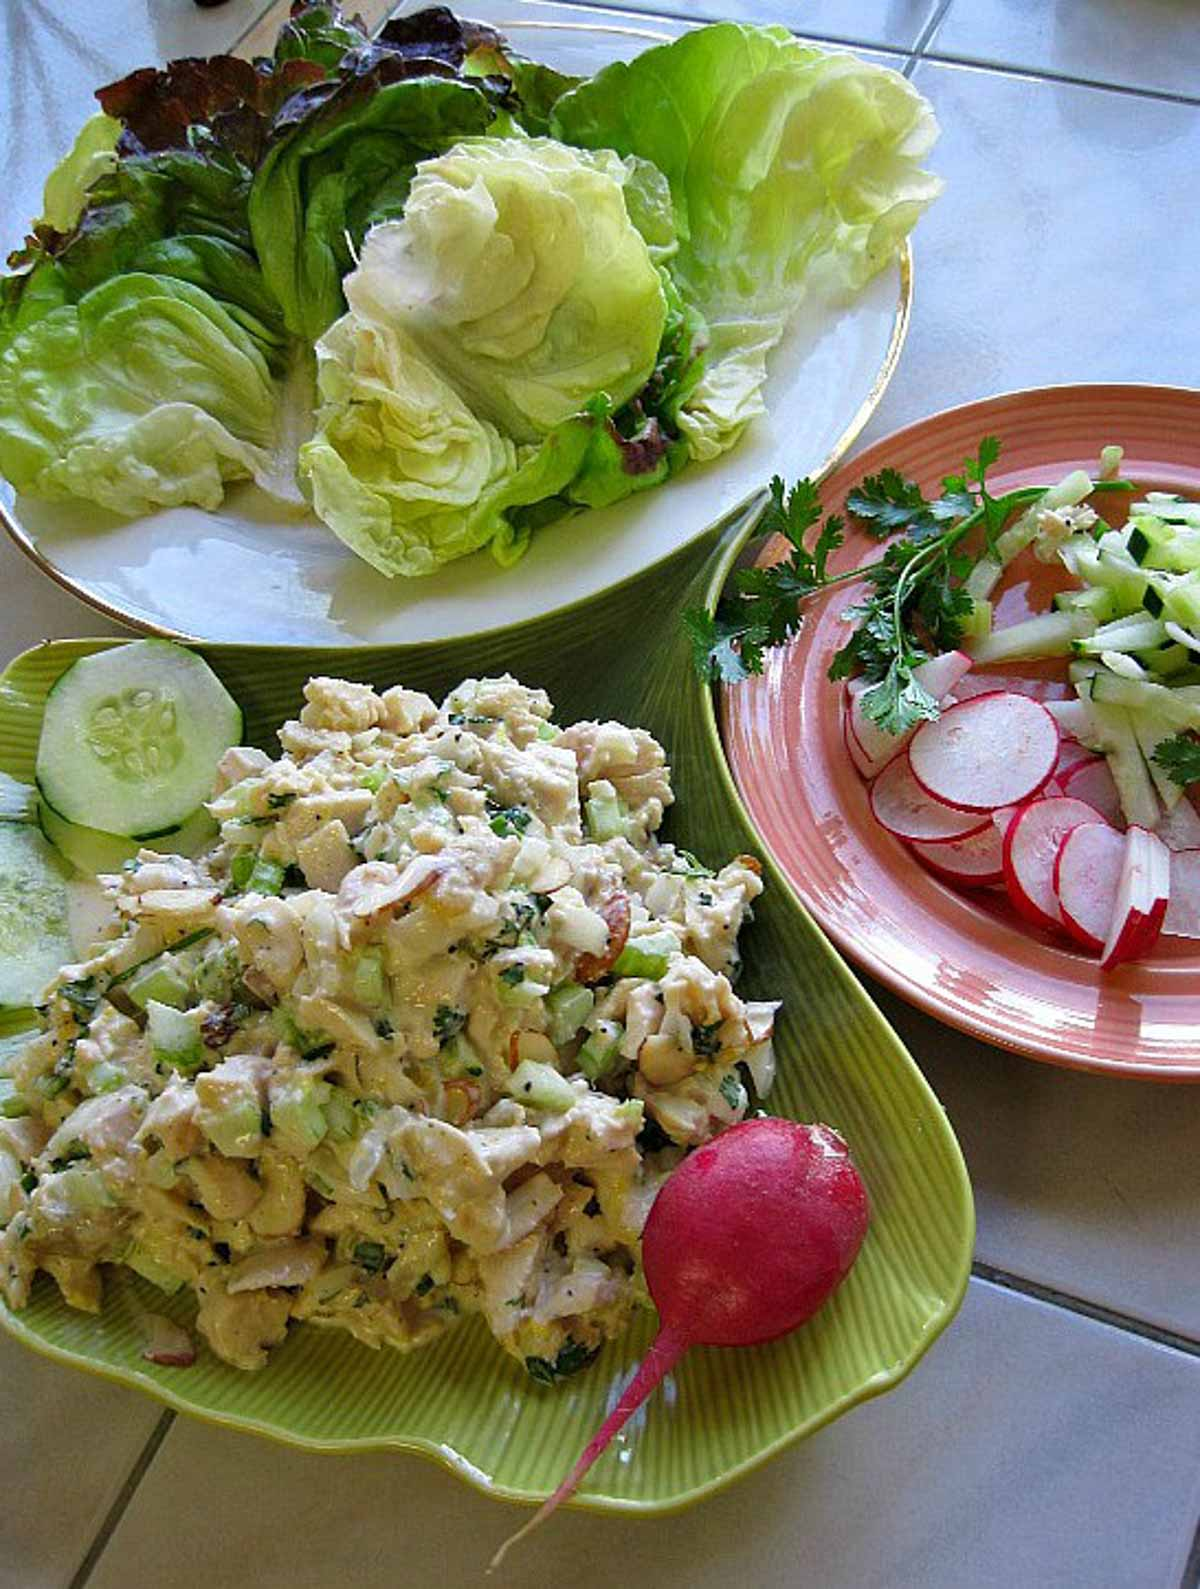 Chicken salad lettuce wraps with radishes, cucumber and cilantro.